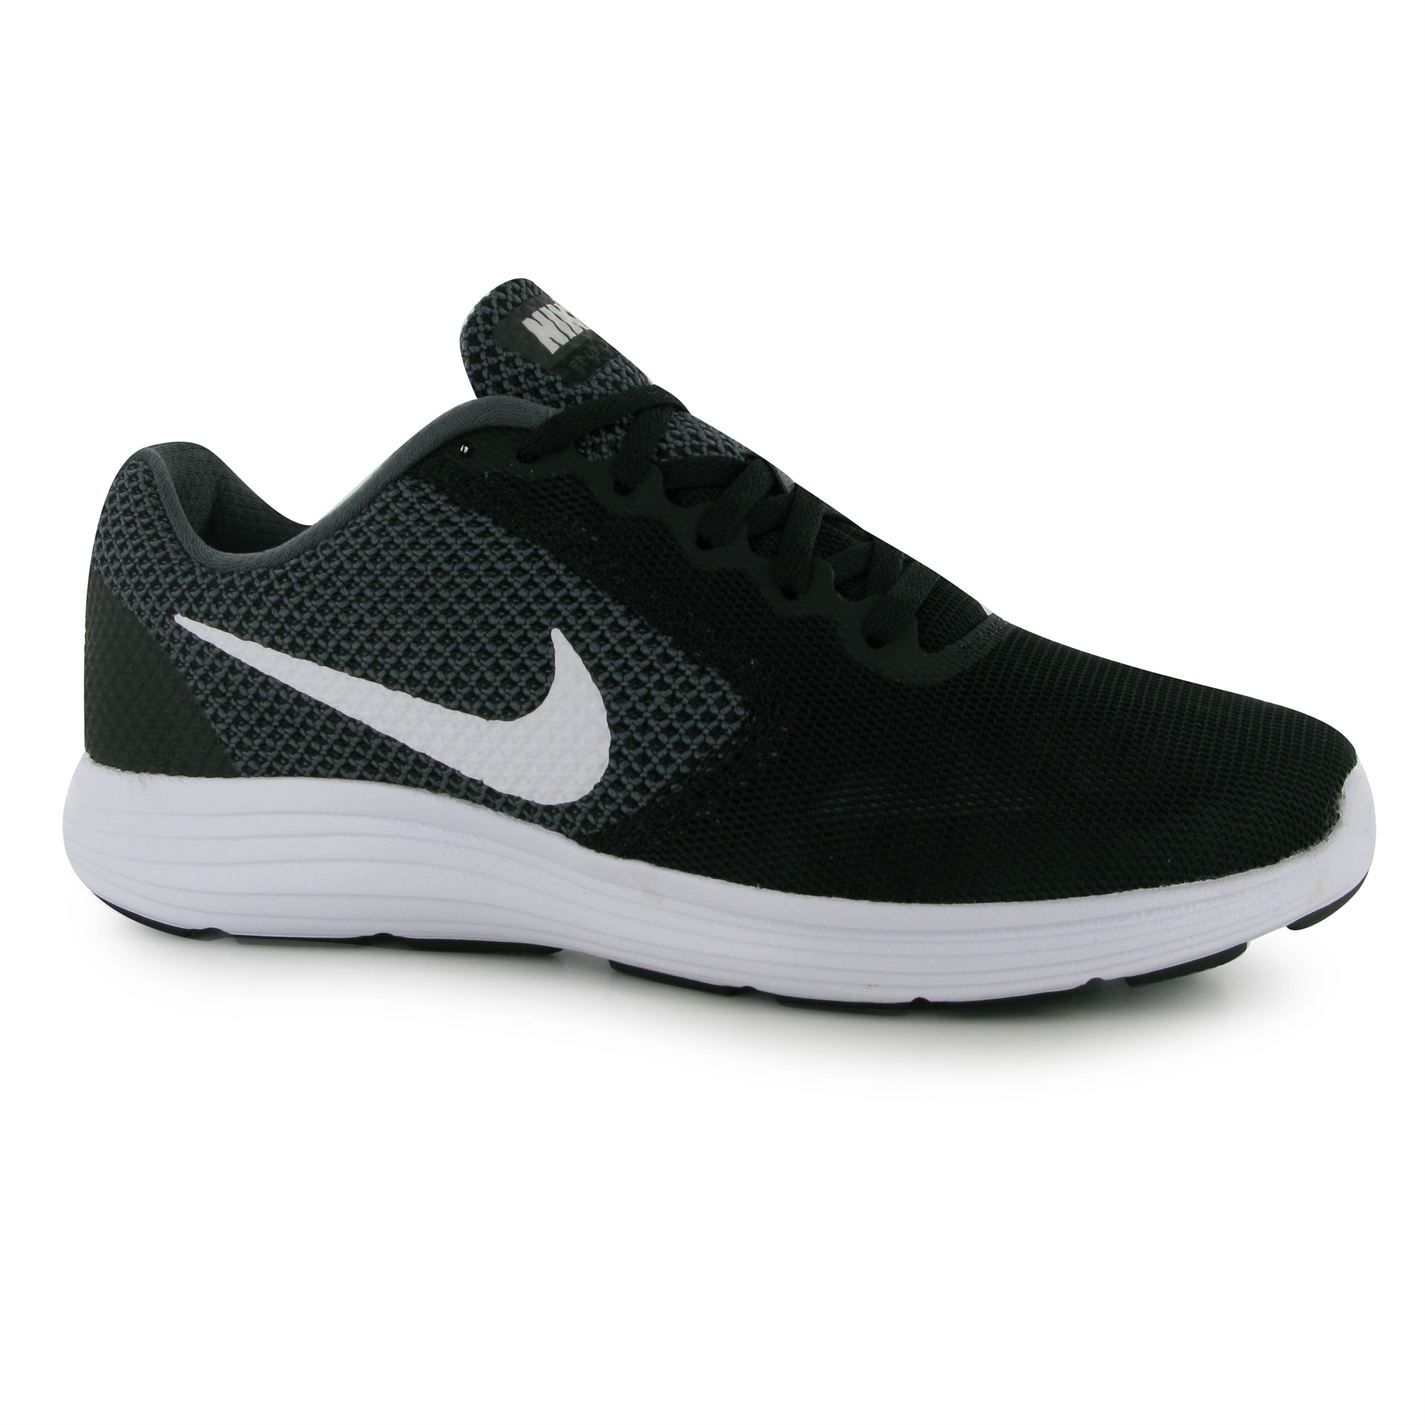 Run in total comfort when you slip into these Nike Revolution 3 Mens  Running Shoes, available online now!